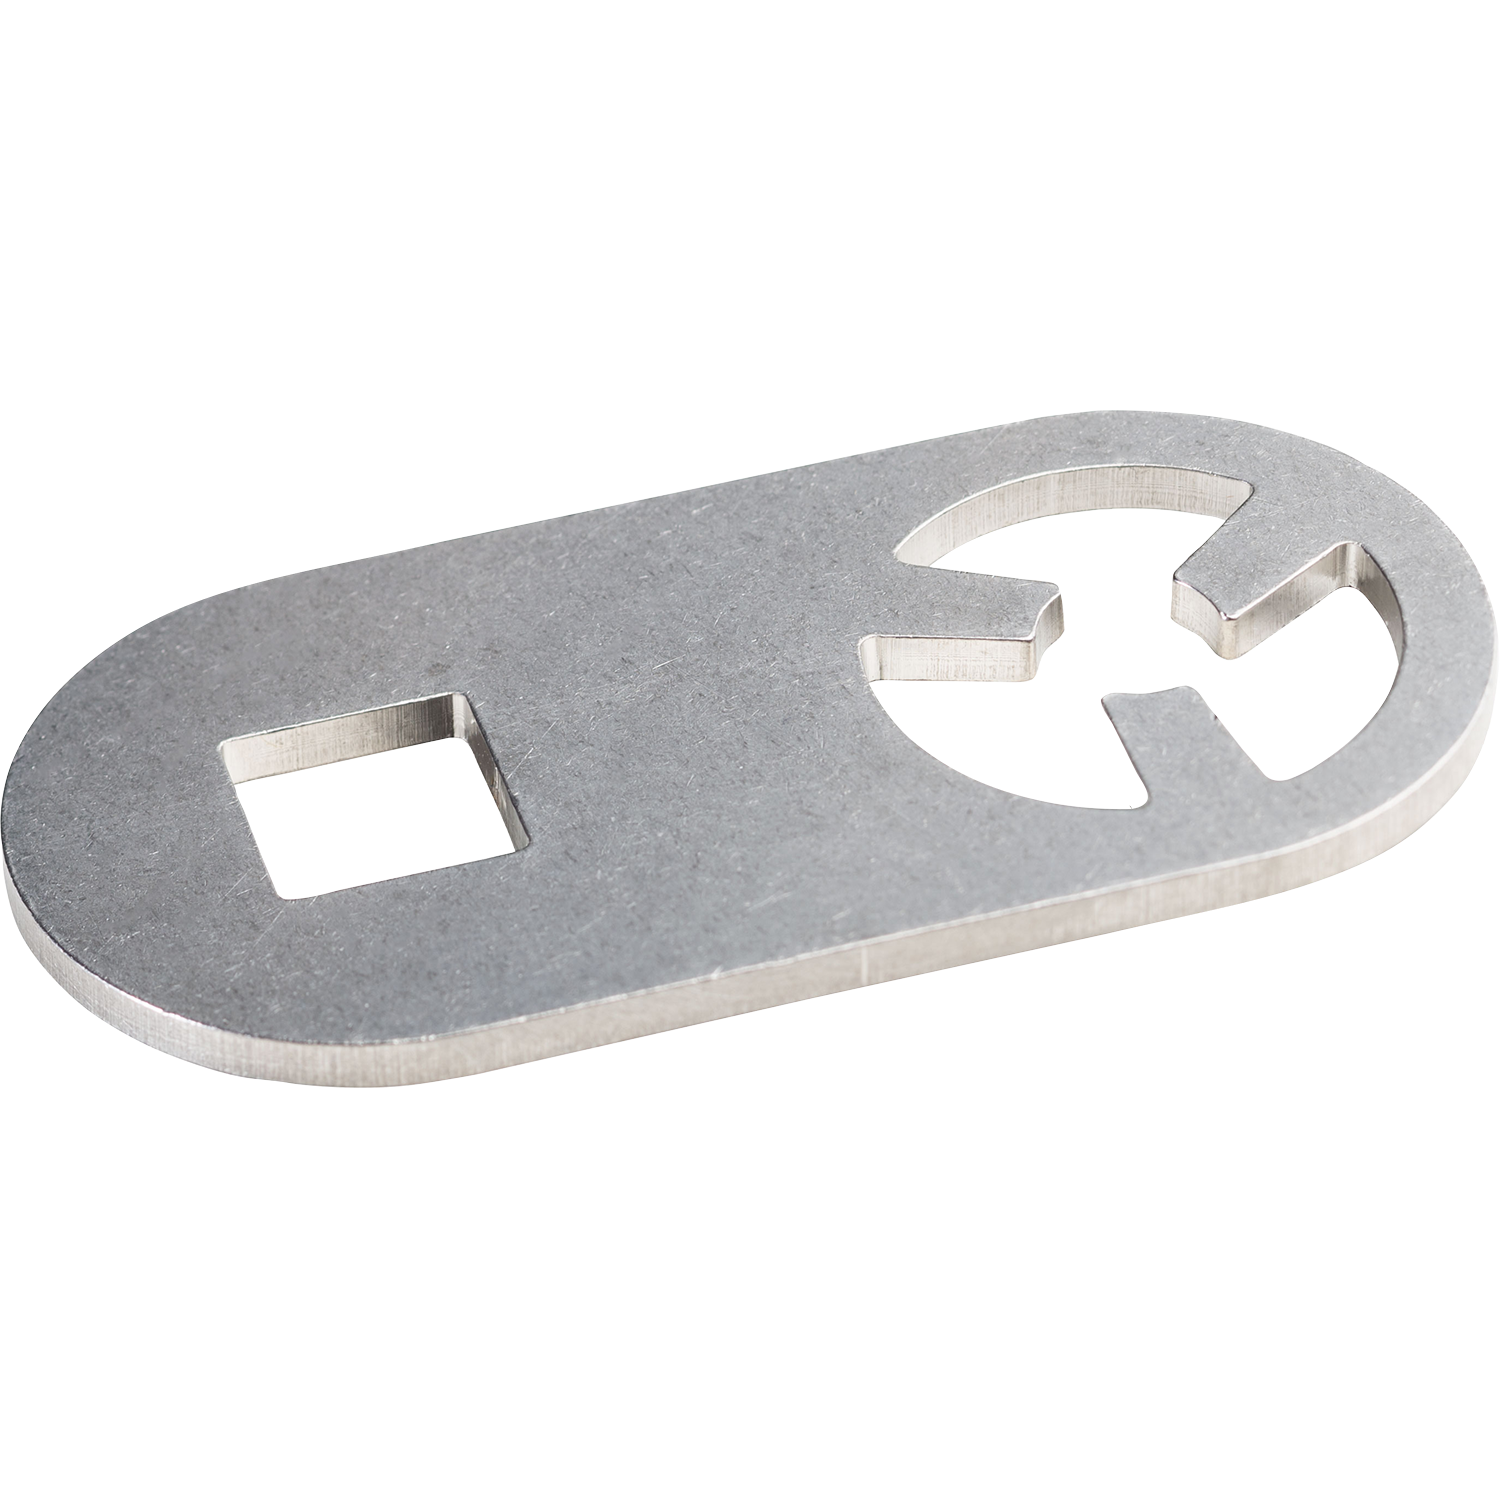 SOCOM 3-Prong Installation Wrench with durable stainless steel